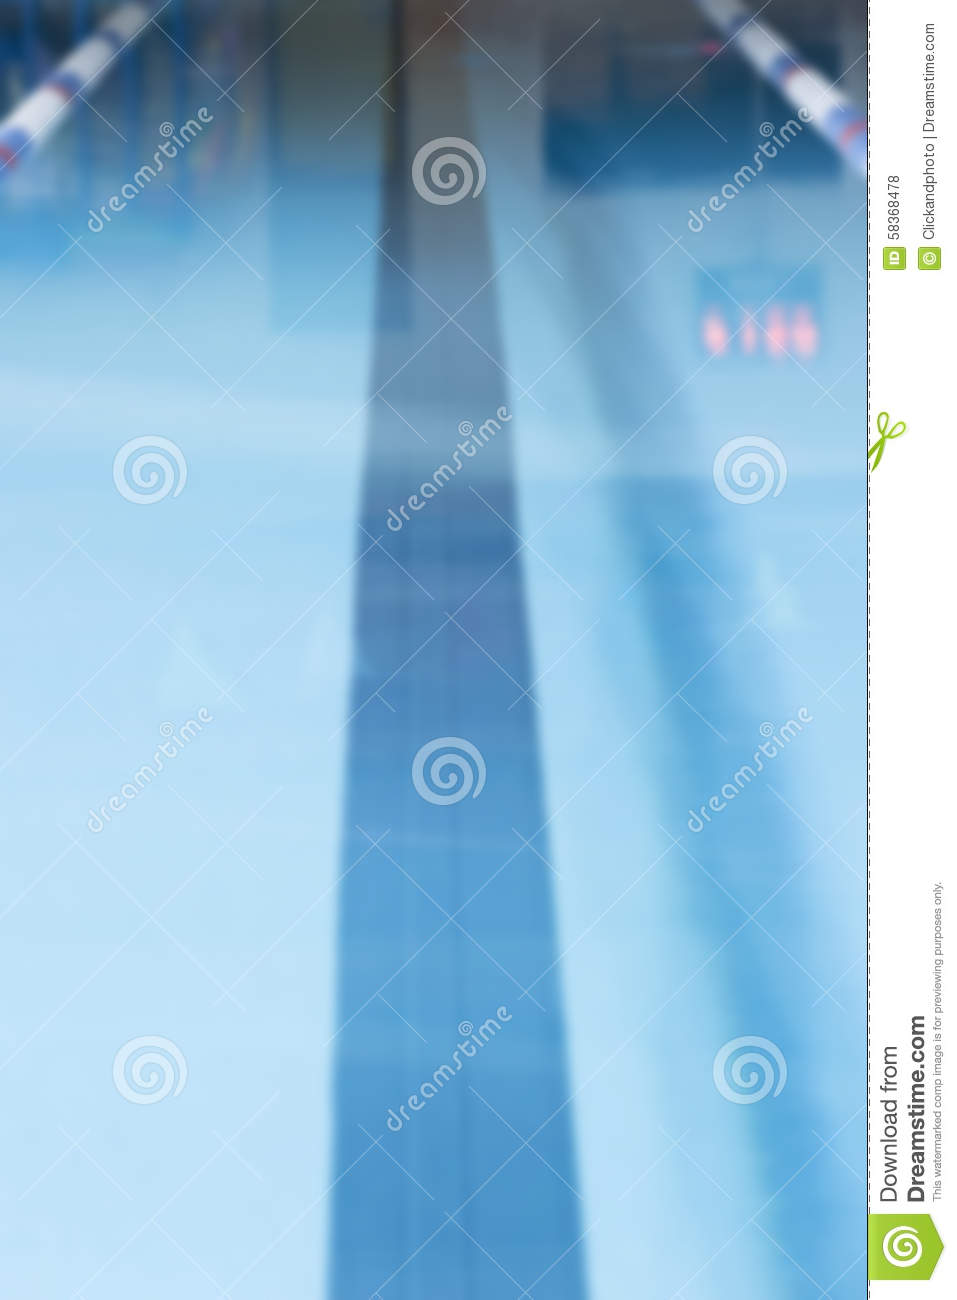 Swimming pool lane lines background Lap Image Of Swimming Pool Lane Lines Background Ropes Ropes Daksh An Underwater View Of The Colourbox Swimming Pool Lane Lines Background Ropes Ropes Daksh An Underwater